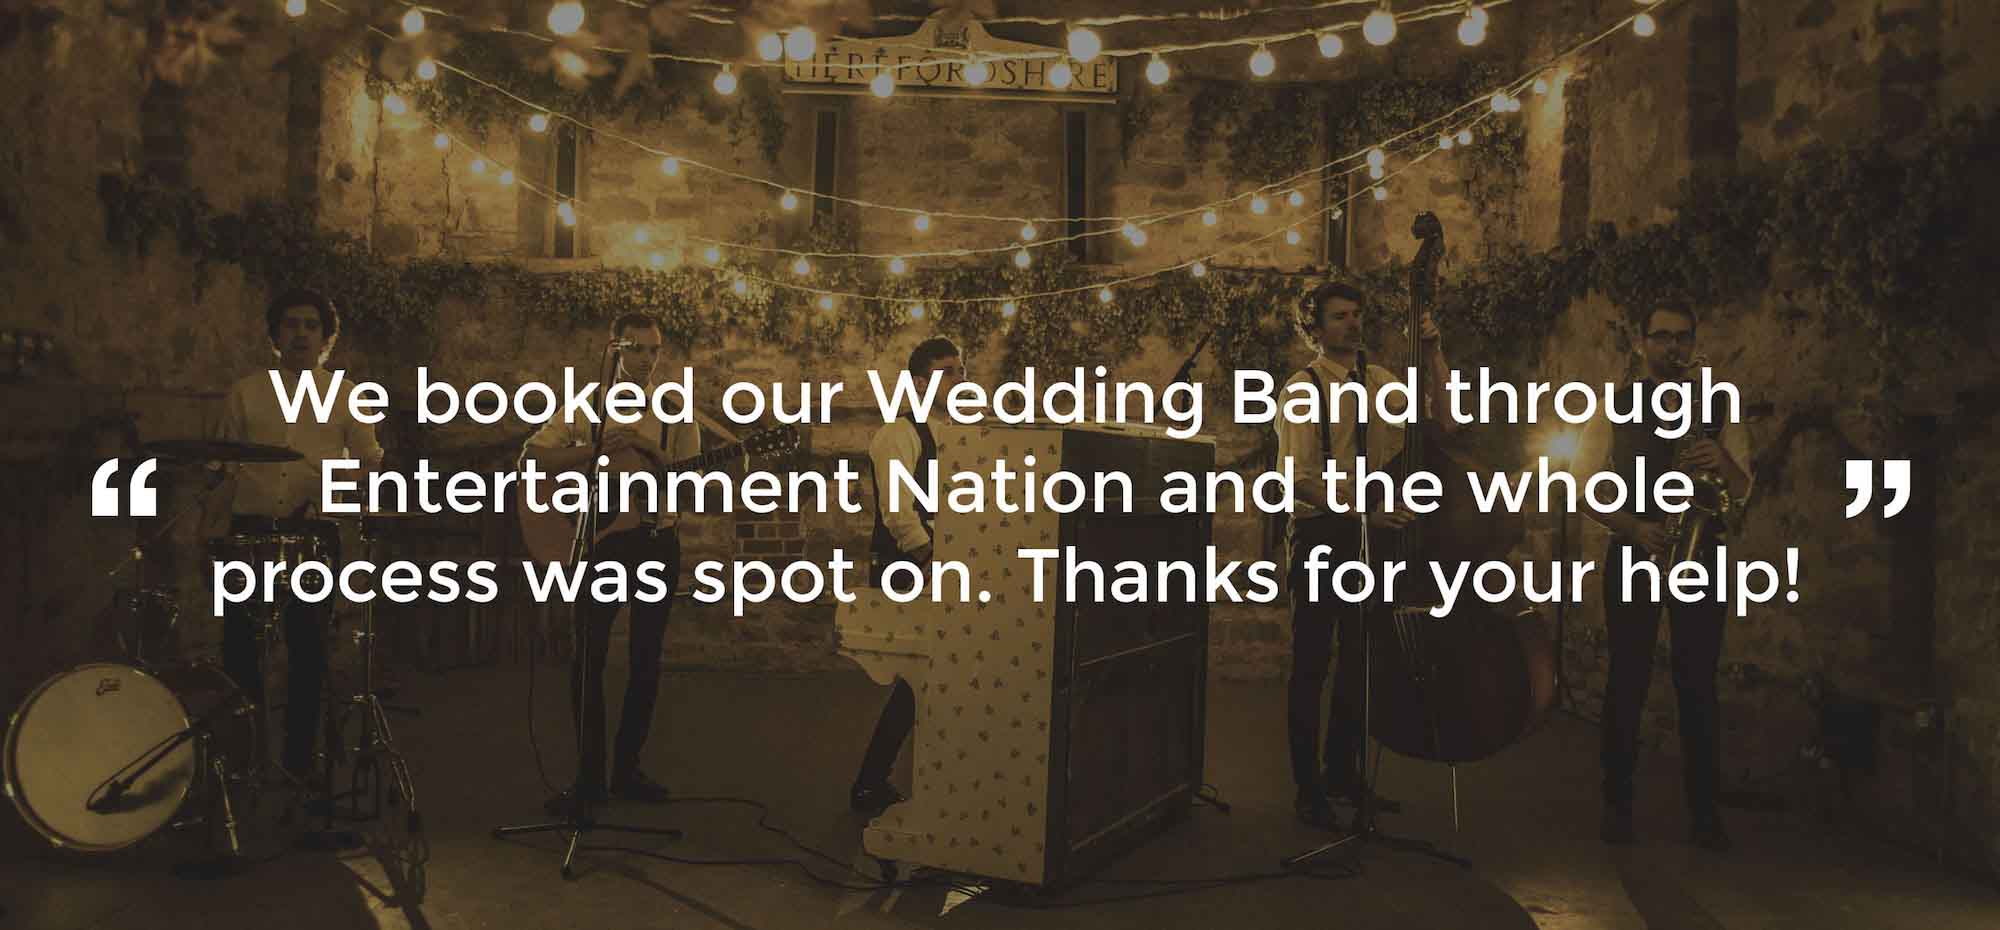 Client Review of a Wedding Band Herefordshire